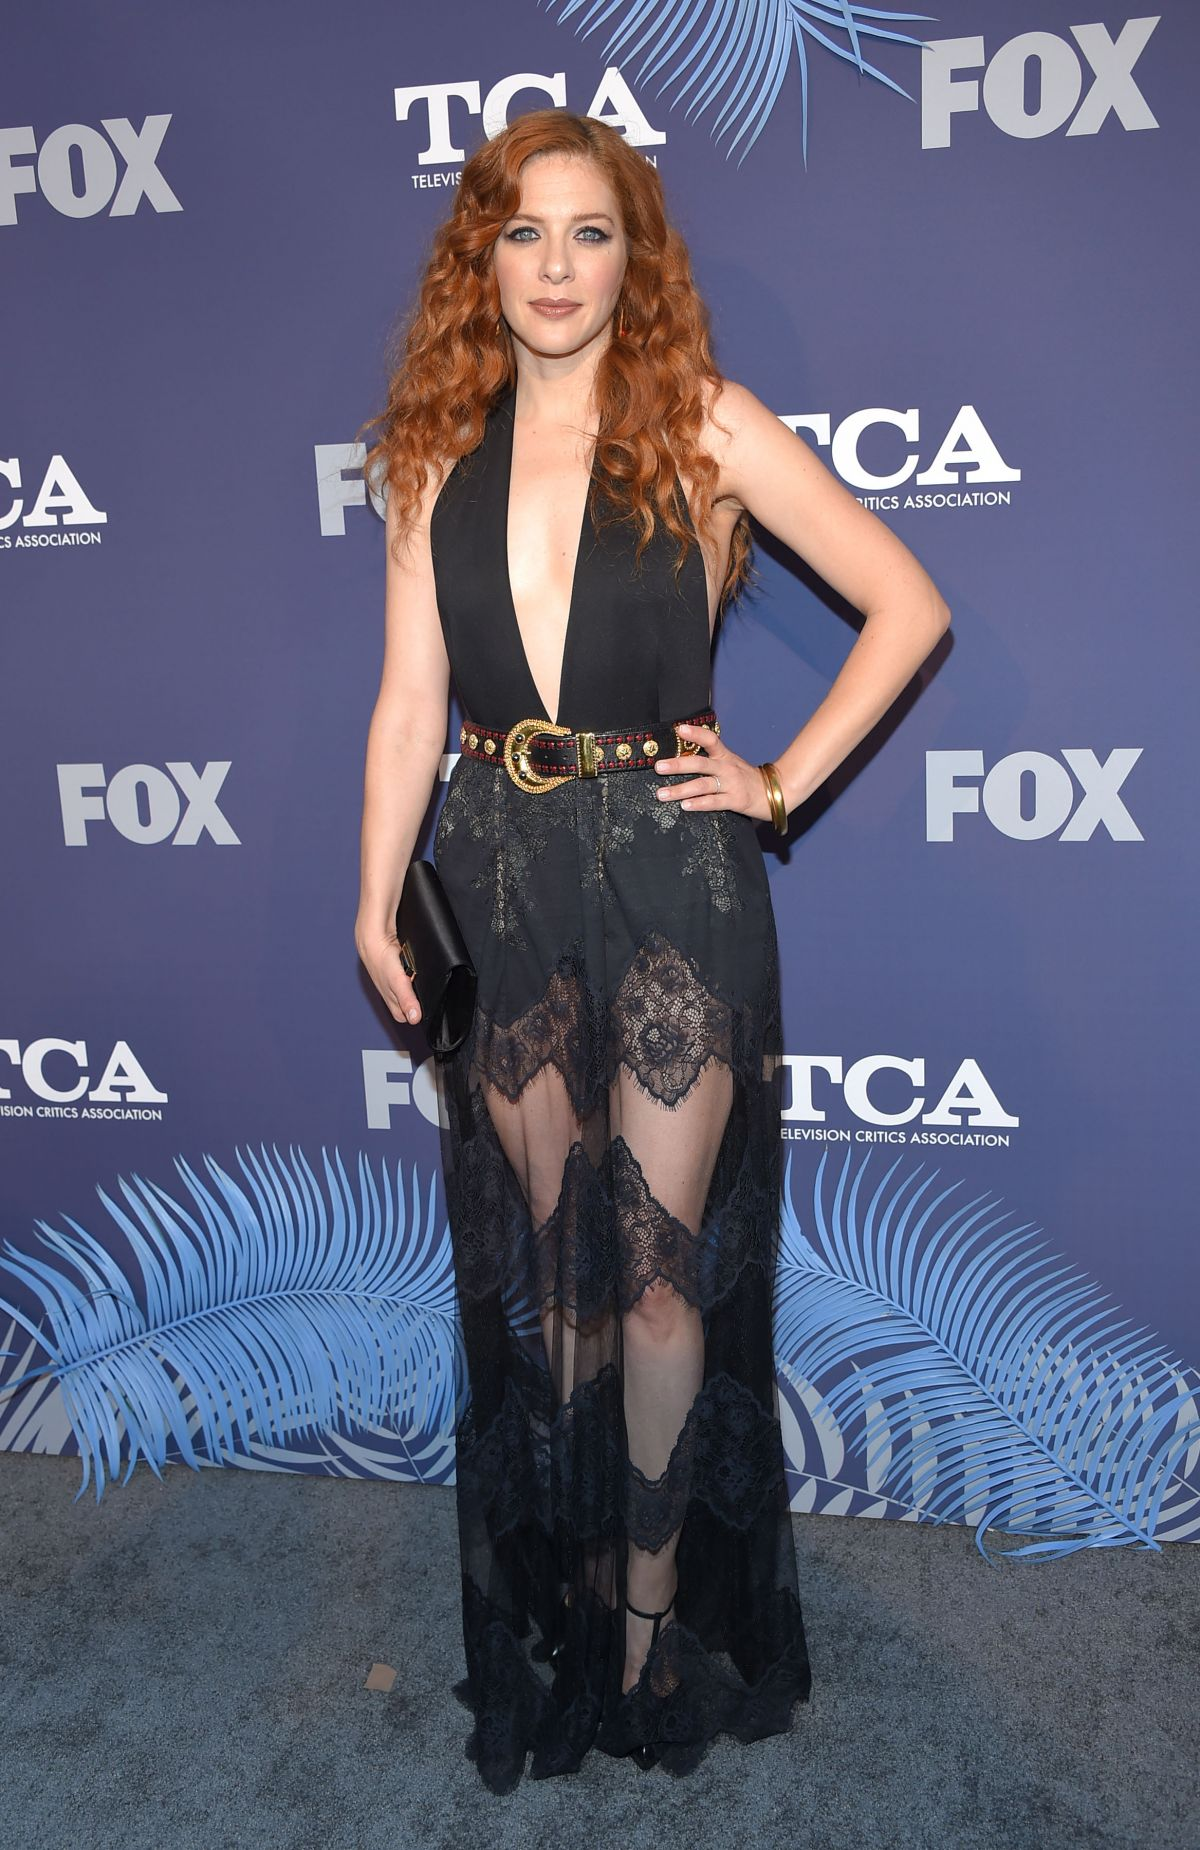 RACHELLE LEFEVRE at Fox Summer All-star Party in Los Angeles 08/02/2018